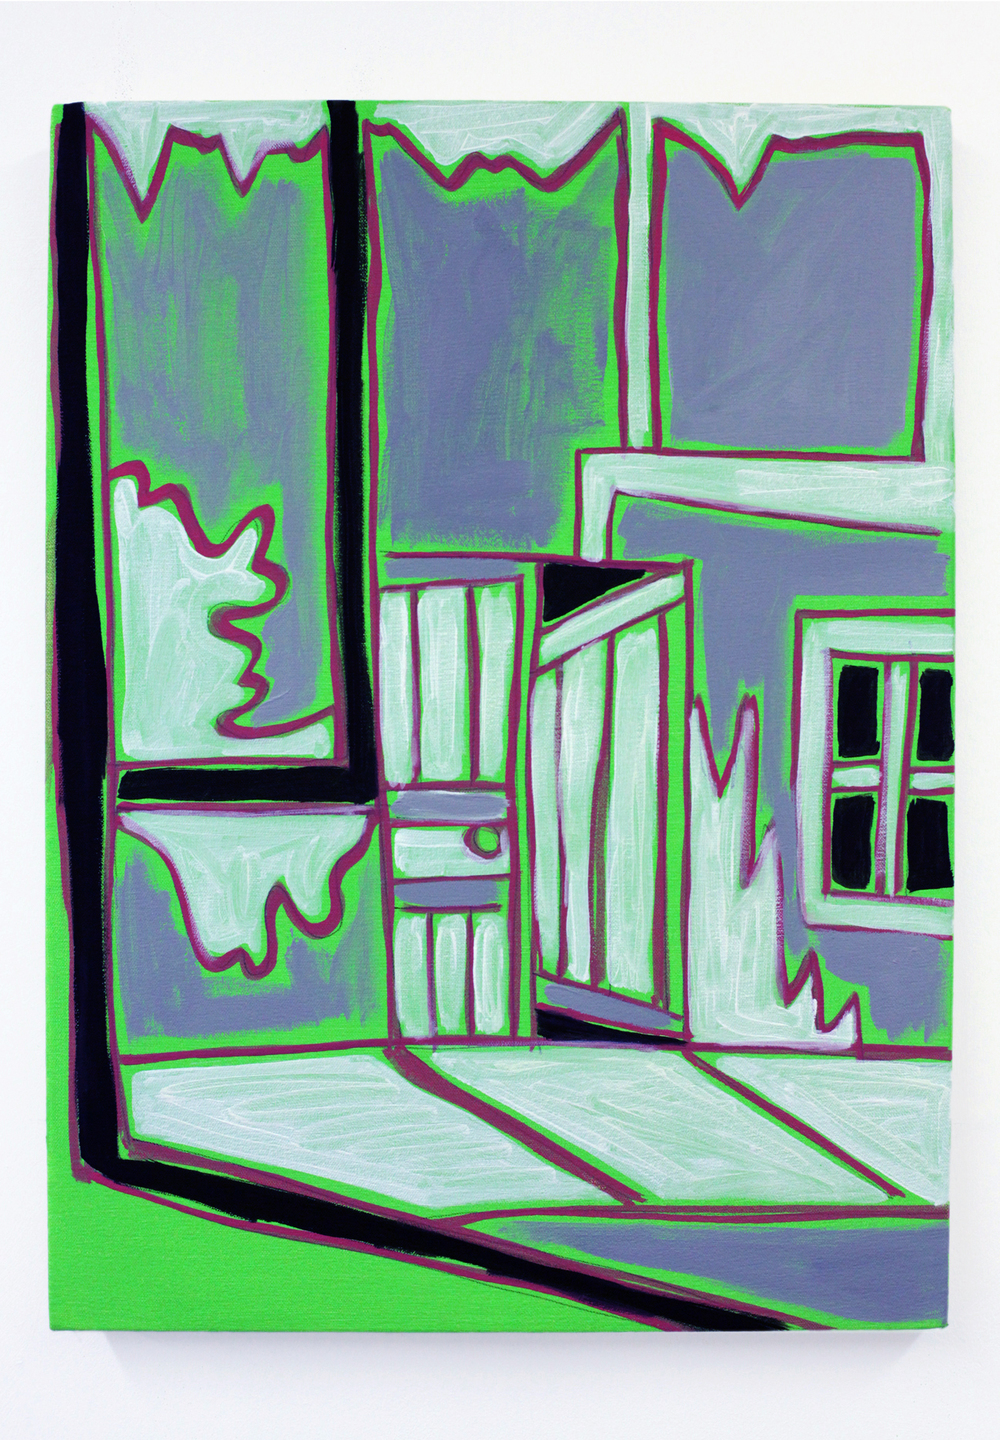 'The door to Giacometti's studio', 2015, oil on canvas, 30 x 40 cm